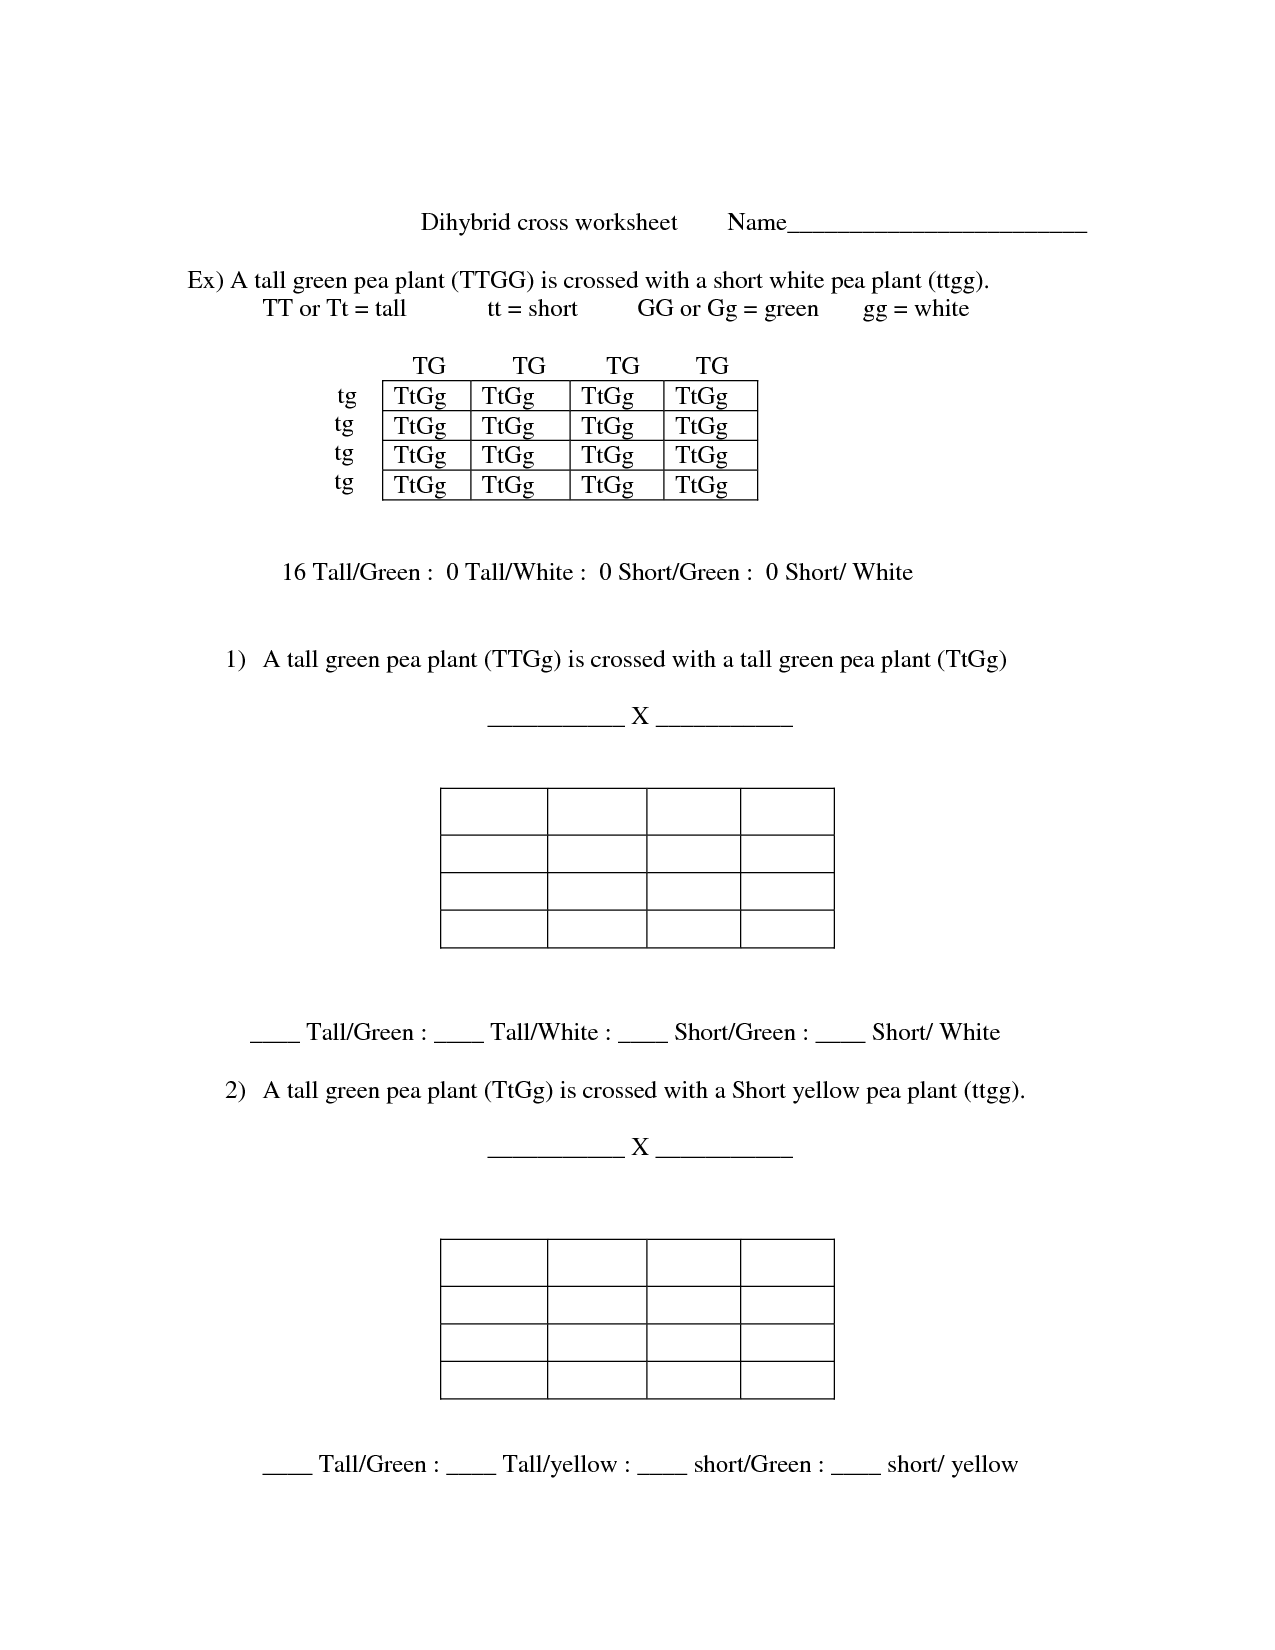 Worksheet Dihybrid Cross Worksheet Answer Key Worksheet Fun Worksheet Study Site